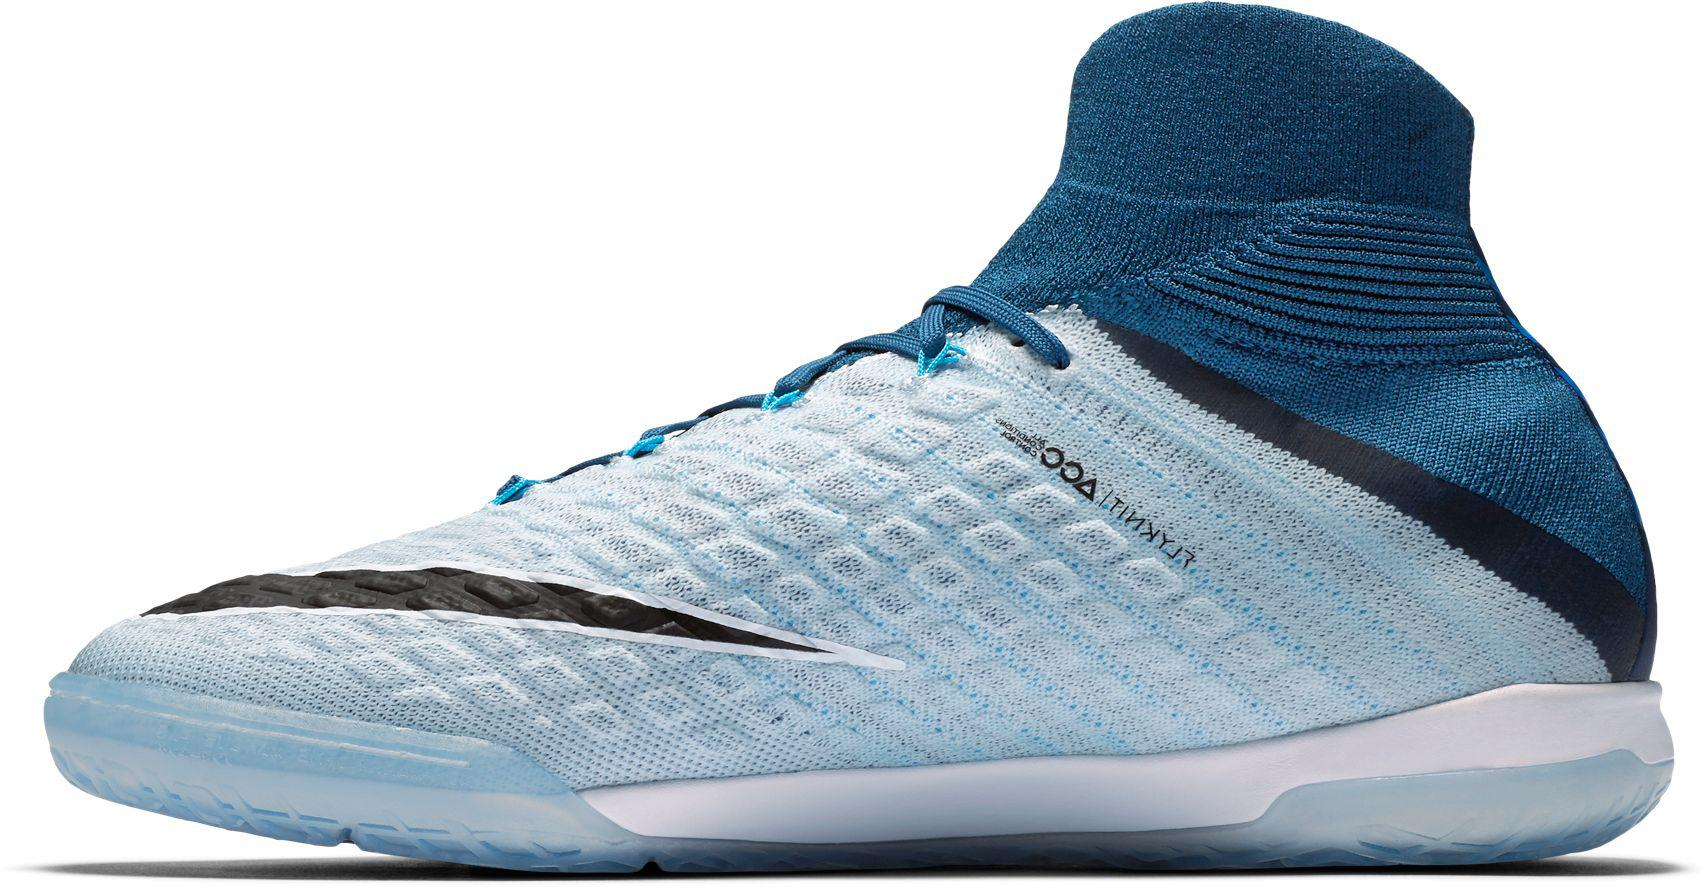 40176b80a Nike Hypervenomx Proximo Ii Dynamic Fit Indoor Soccer Shoes in Blue ...